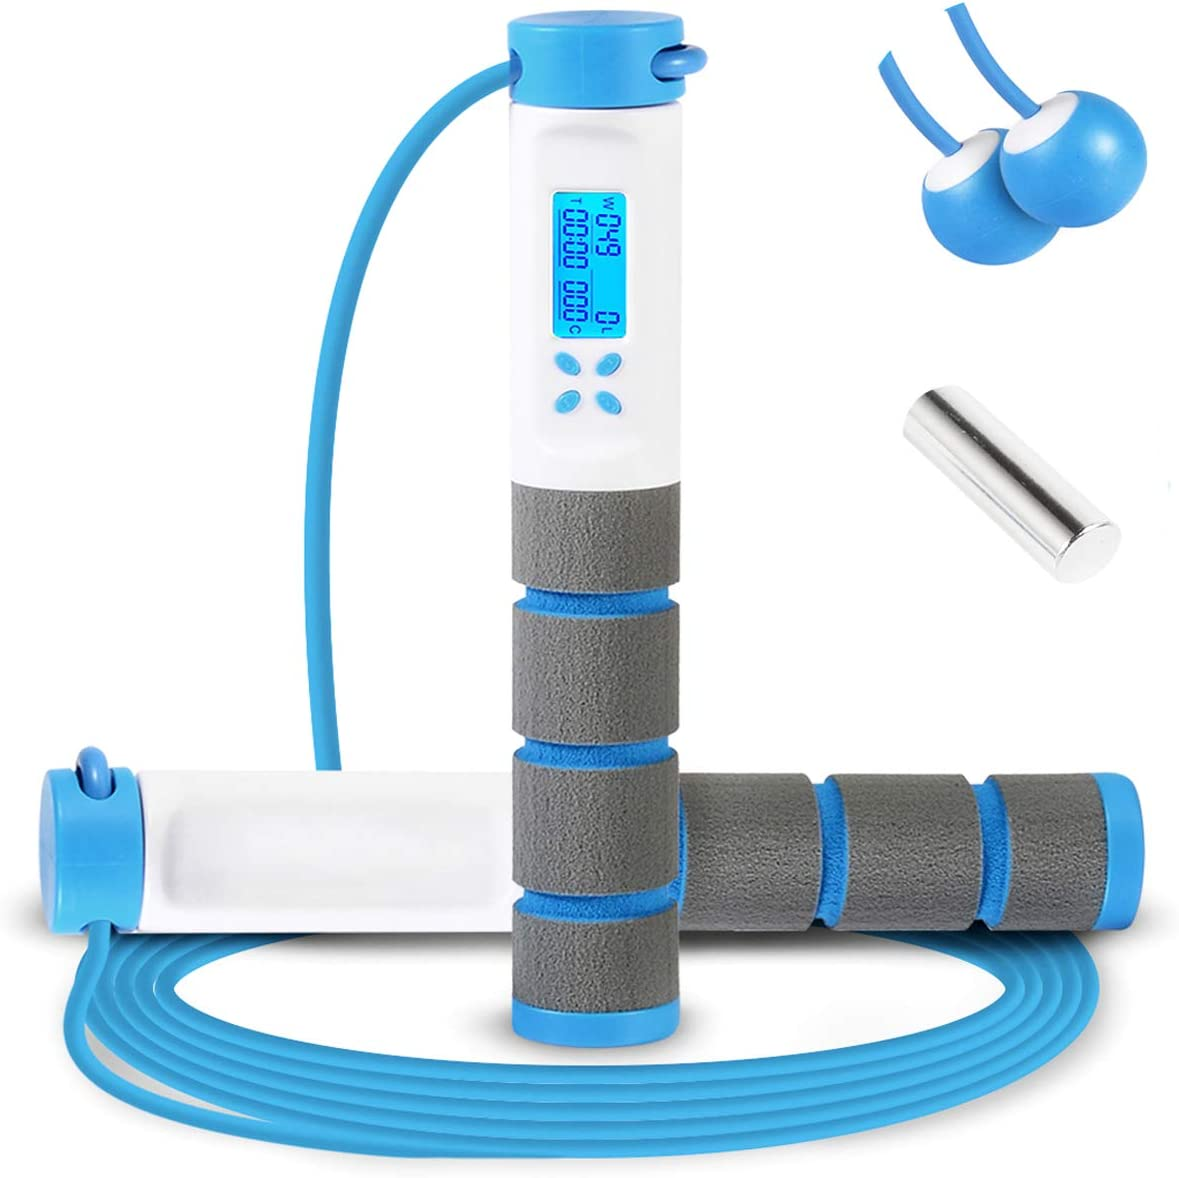 Adult Skipping Rope Fitness Jumping Weight Loss Exercise Gym Home Training ge*